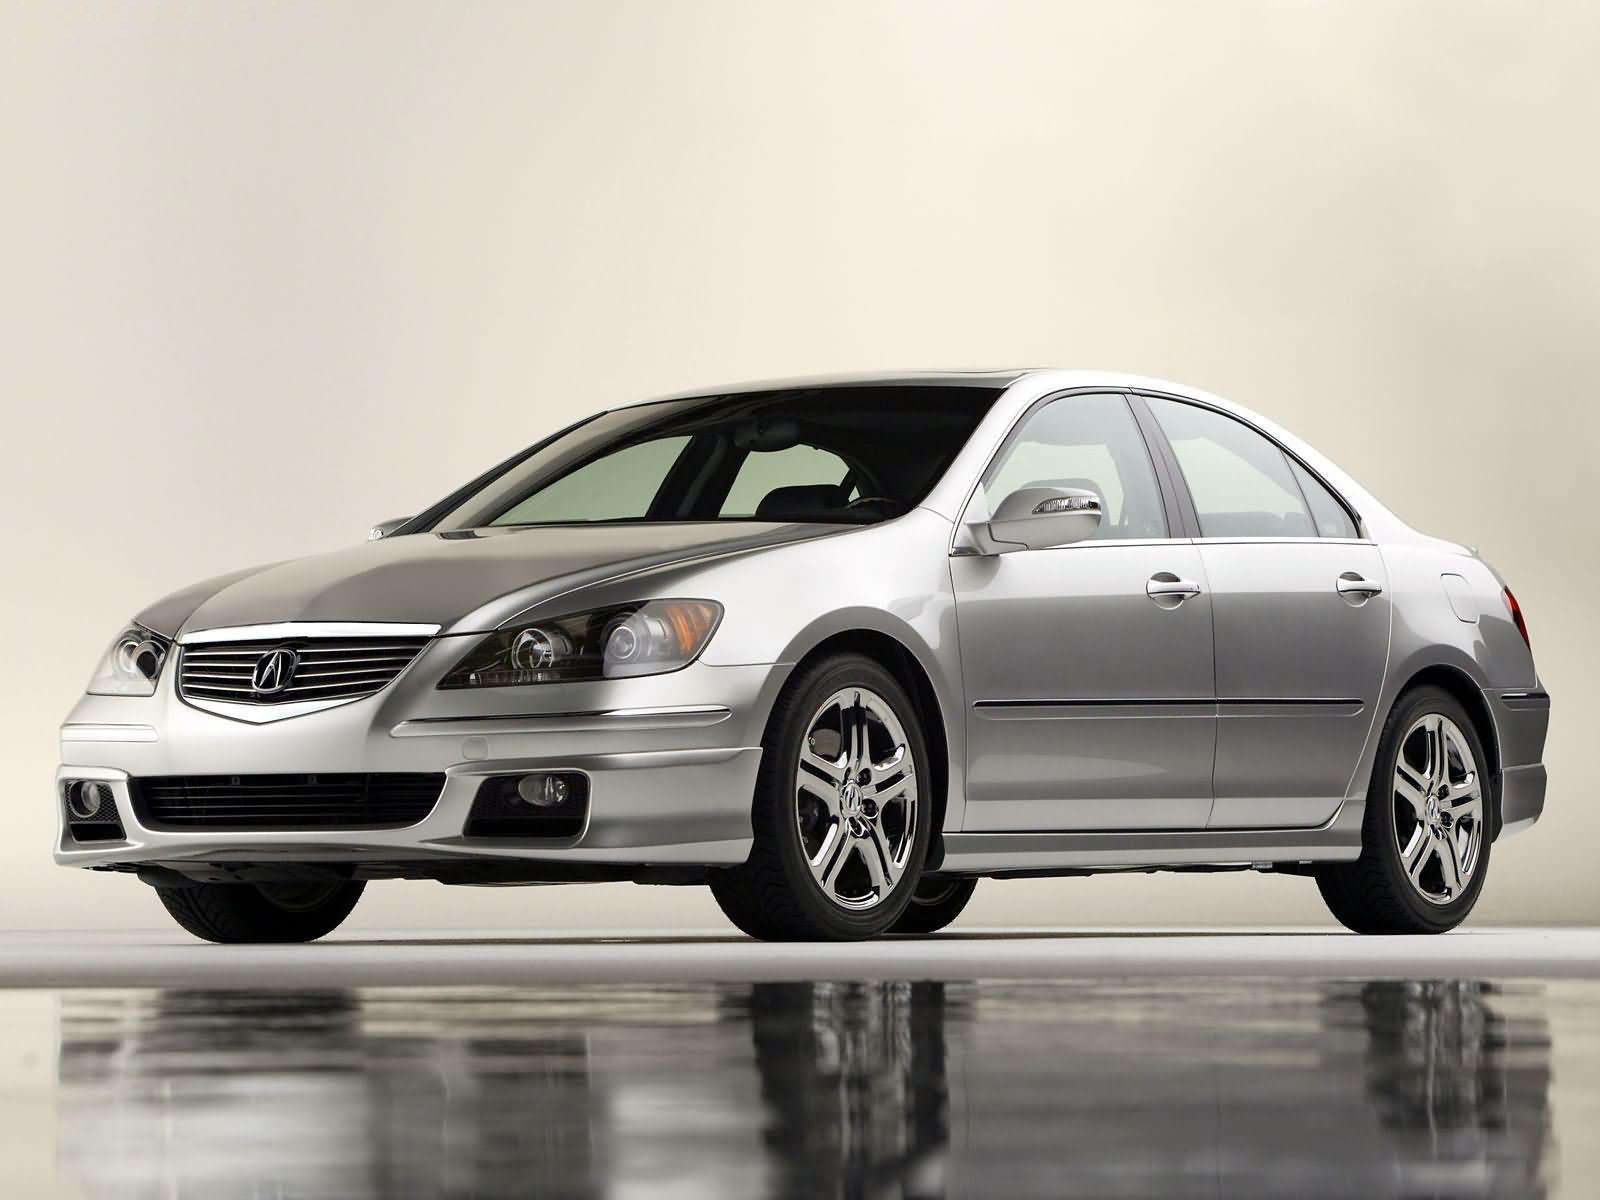 2005 Acura RL with ASPEC Performance Package photo - 3